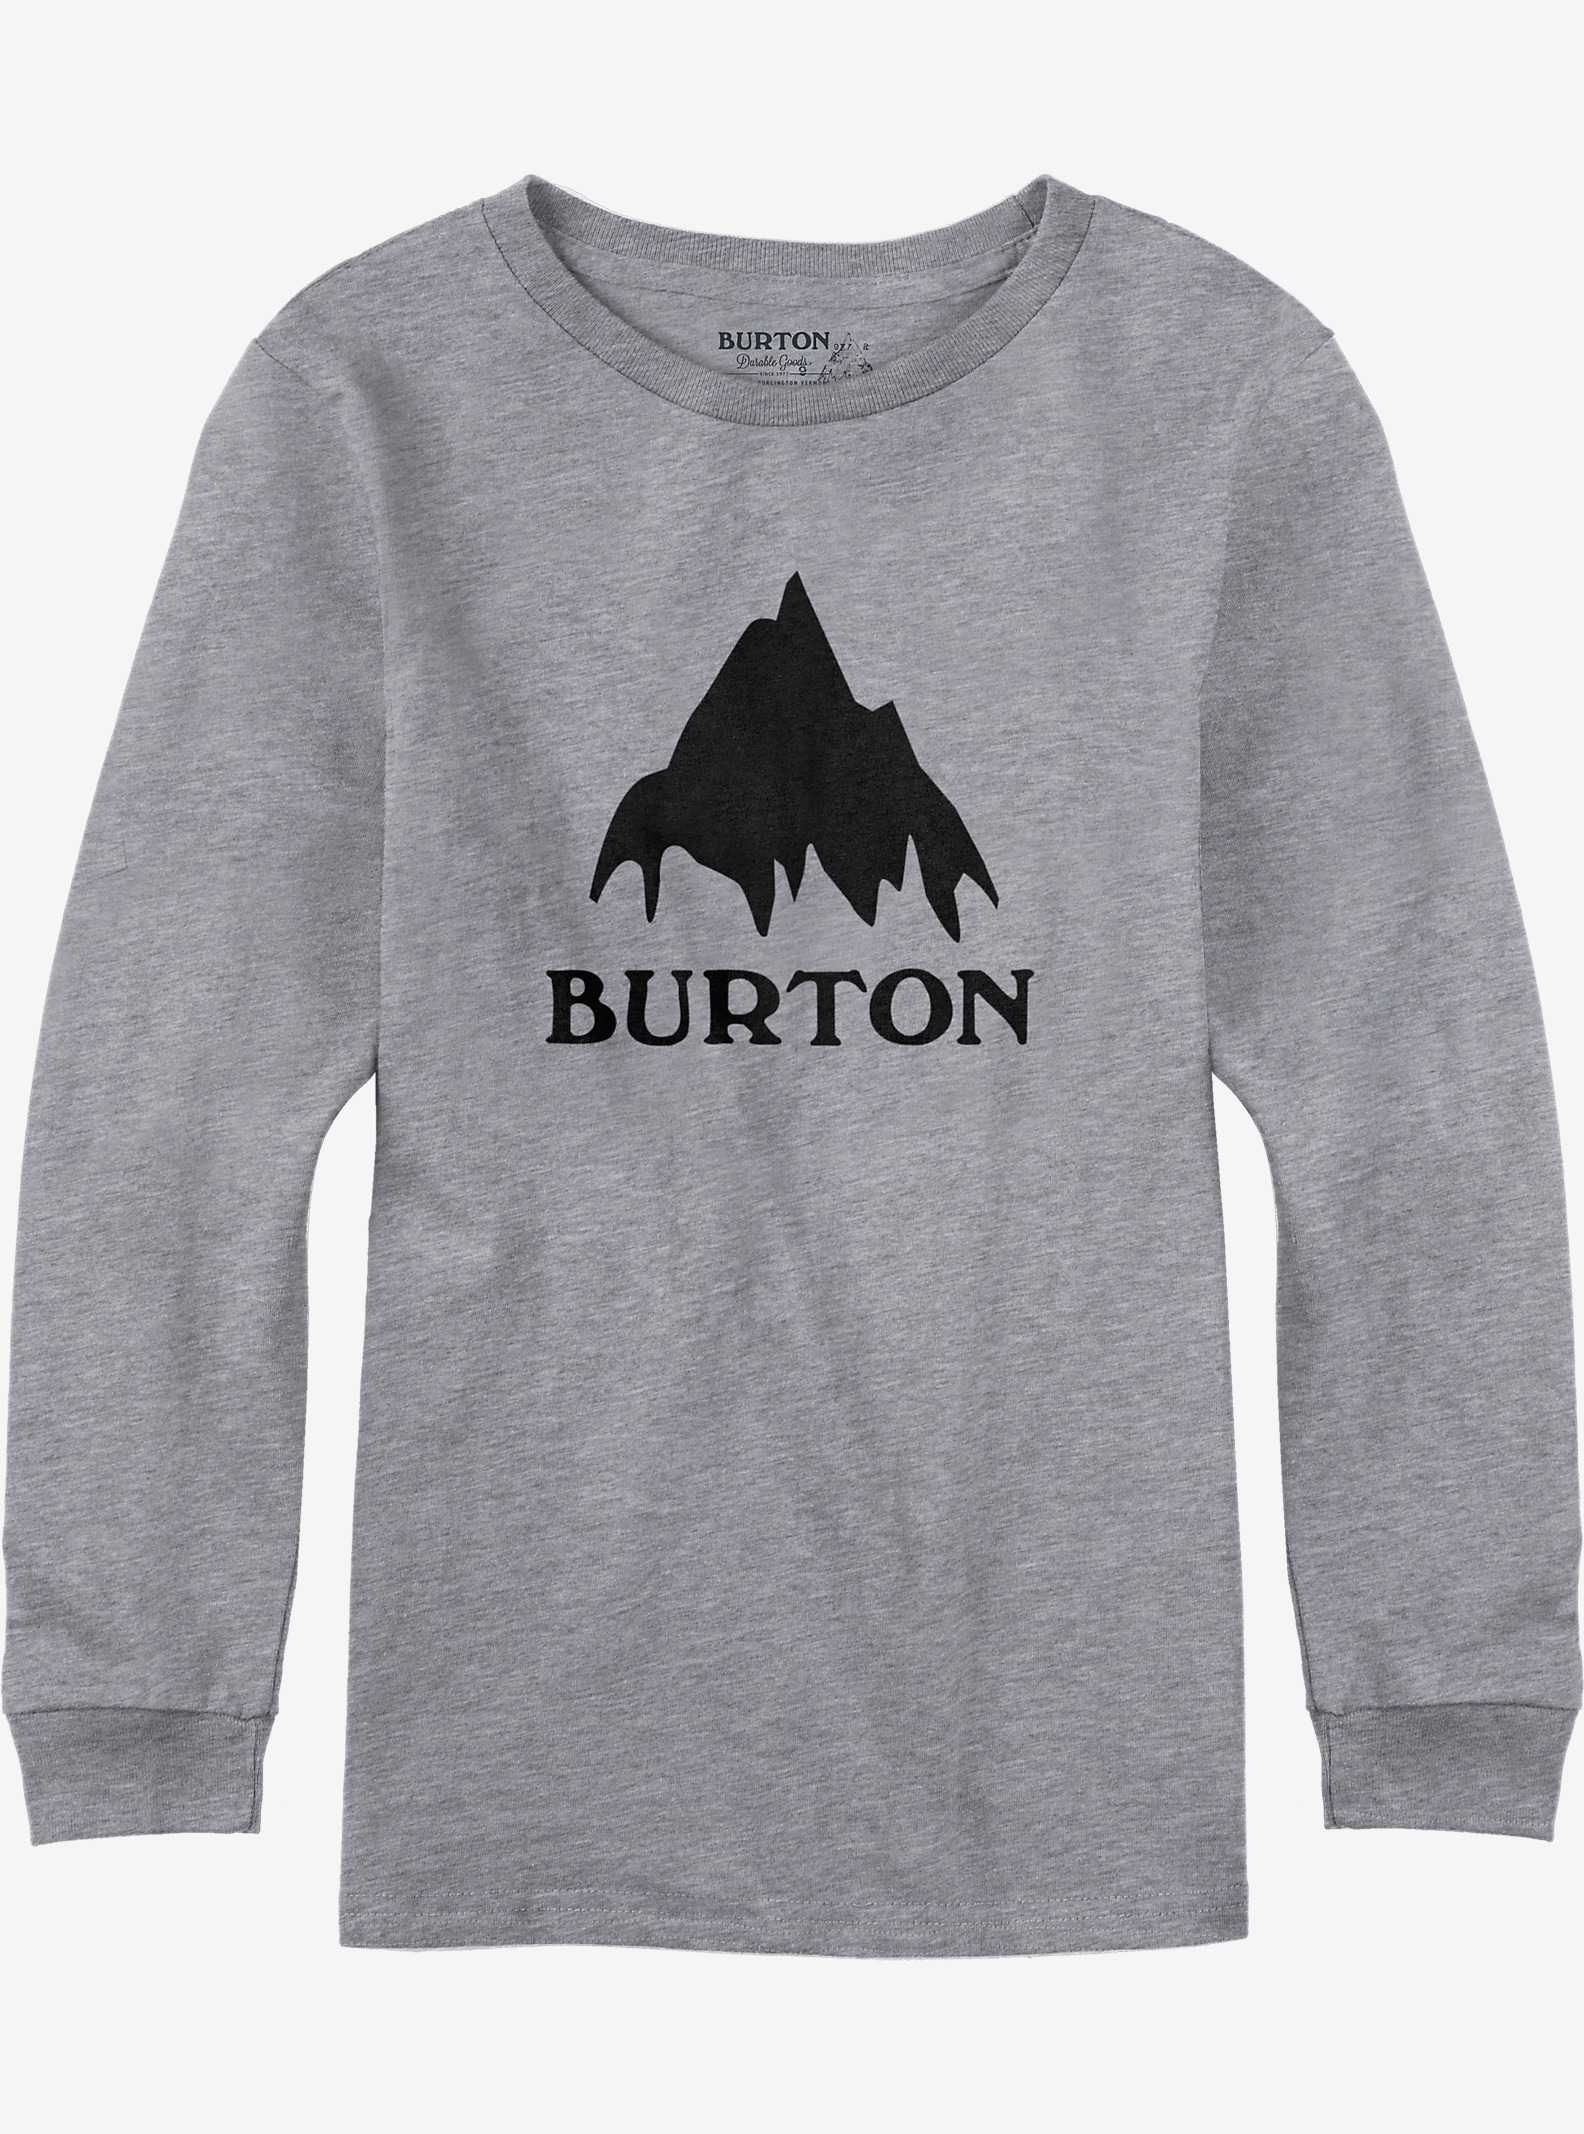 Burton Classic Mountain Long Sleeve T Shirt shown in Gray Heather